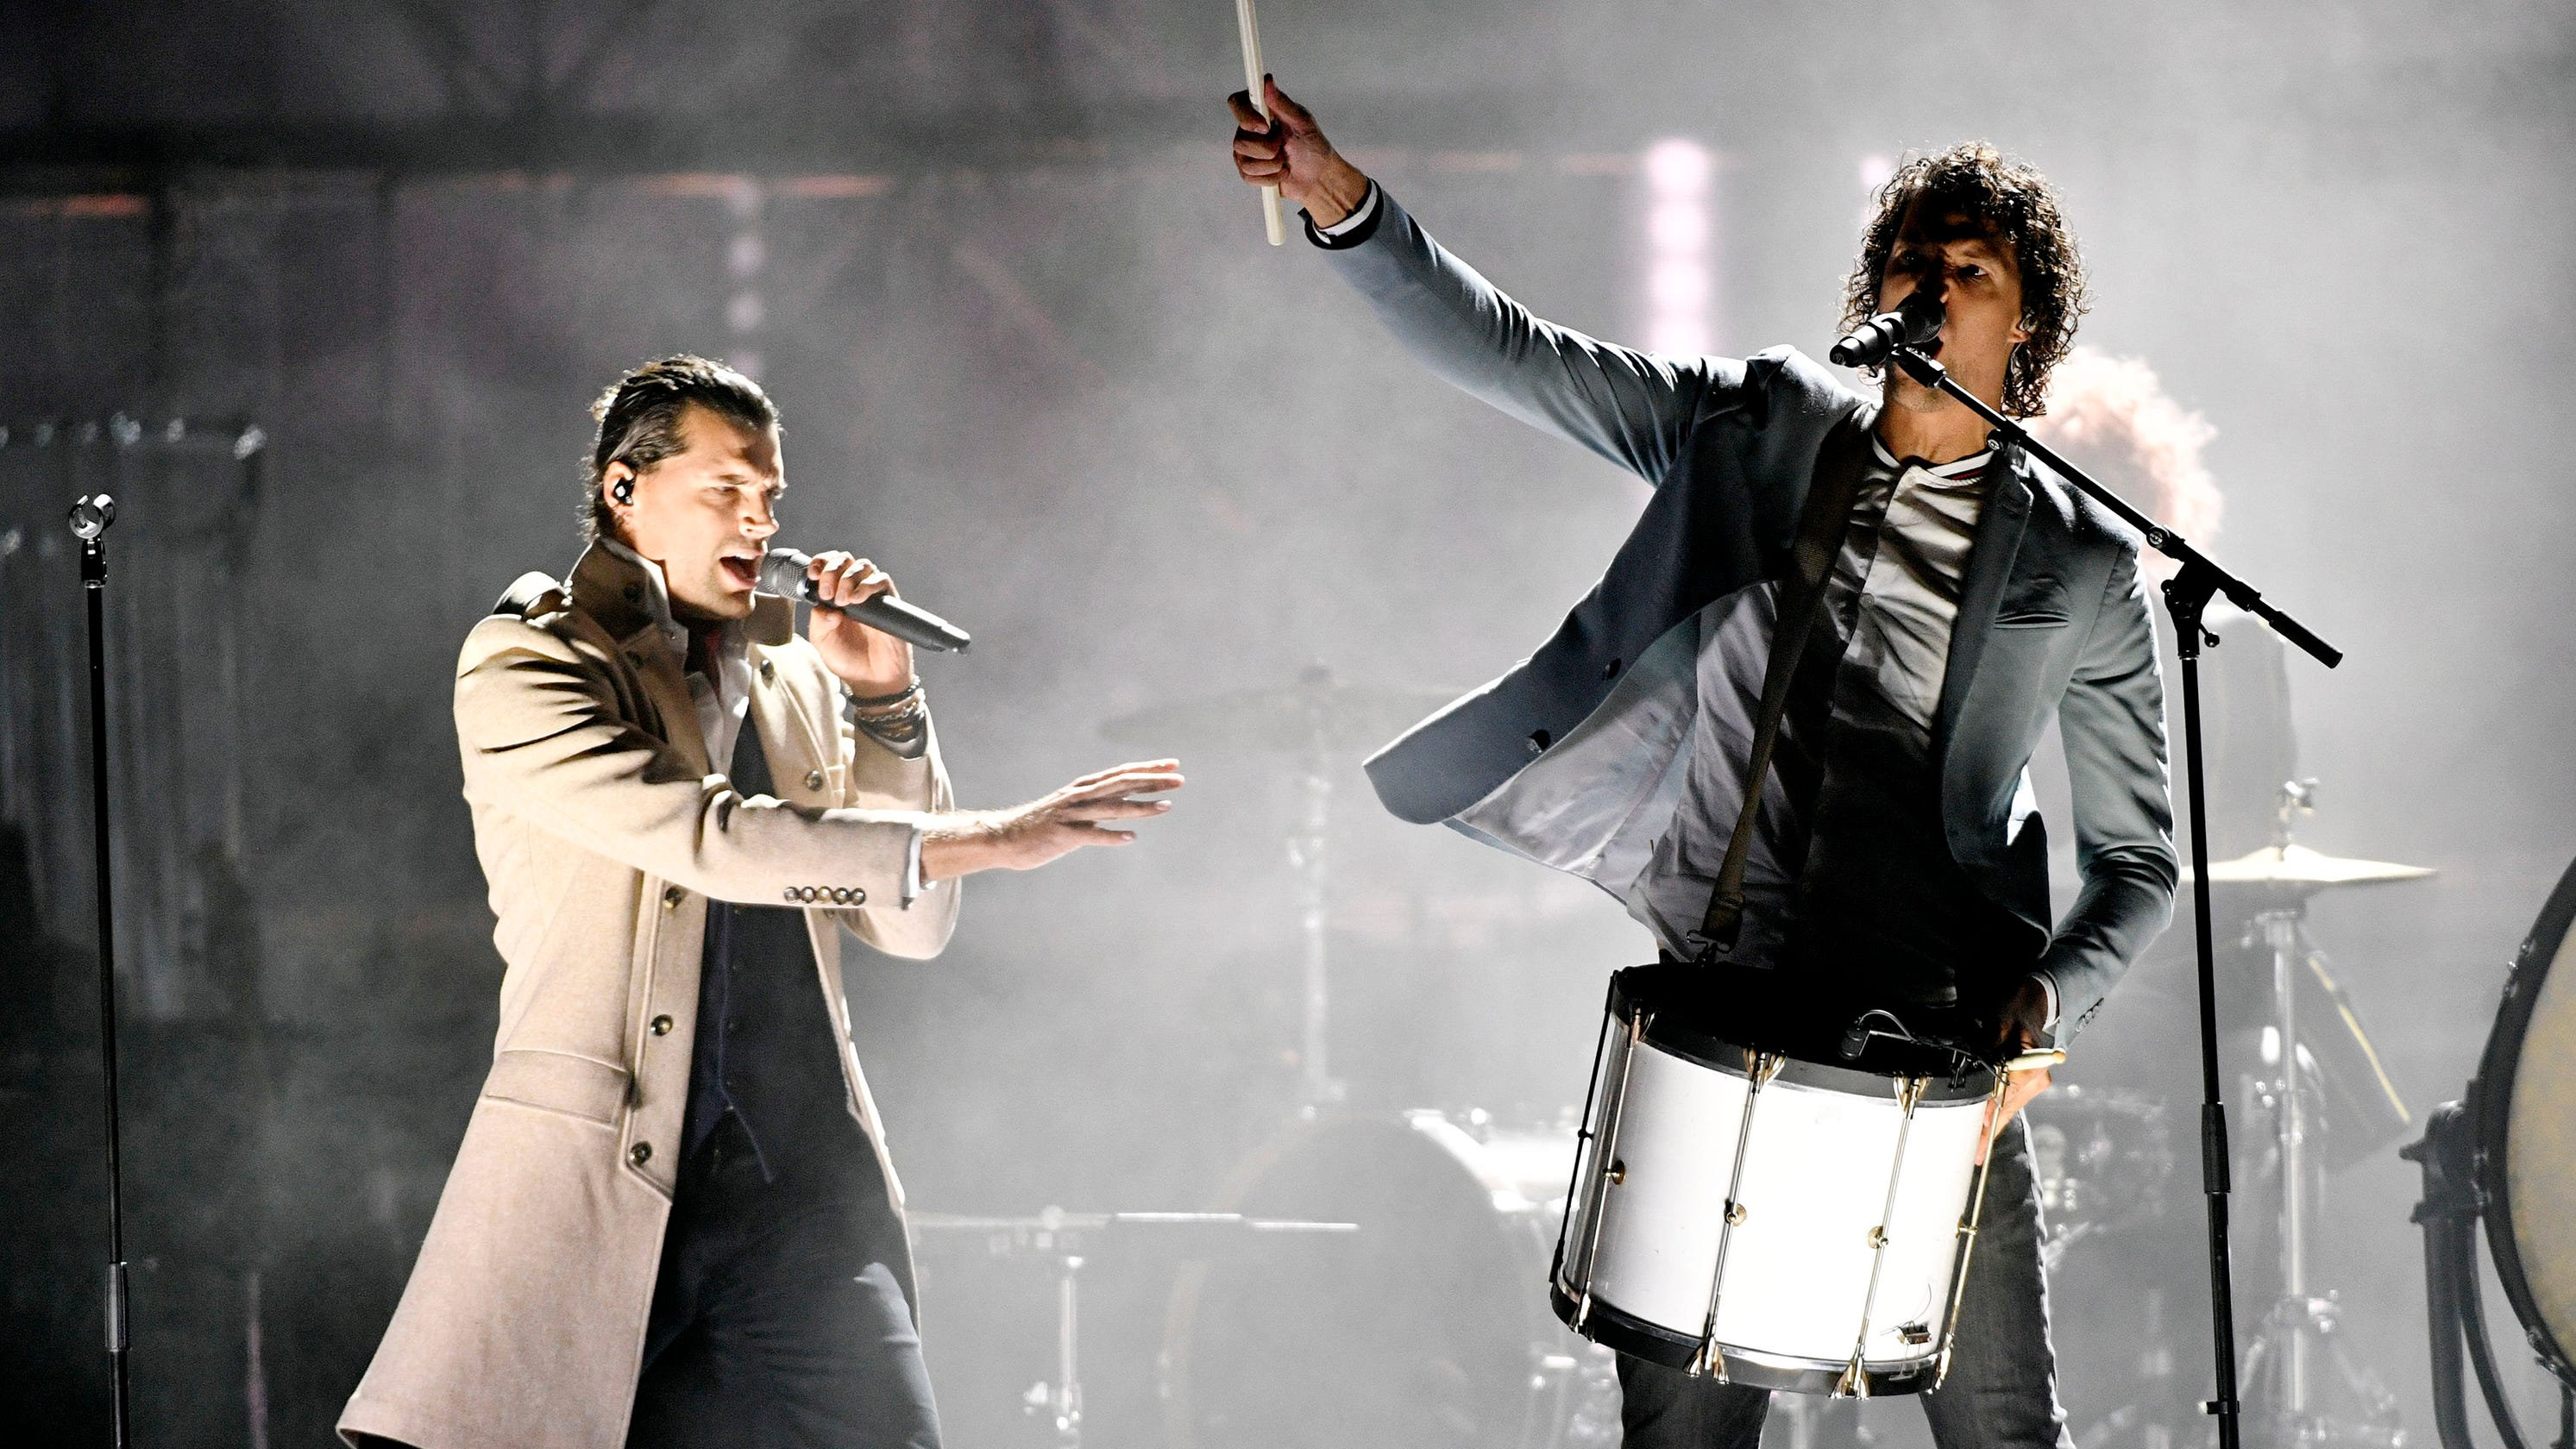 for KING & COUNTRY 'Little Drummer Boy